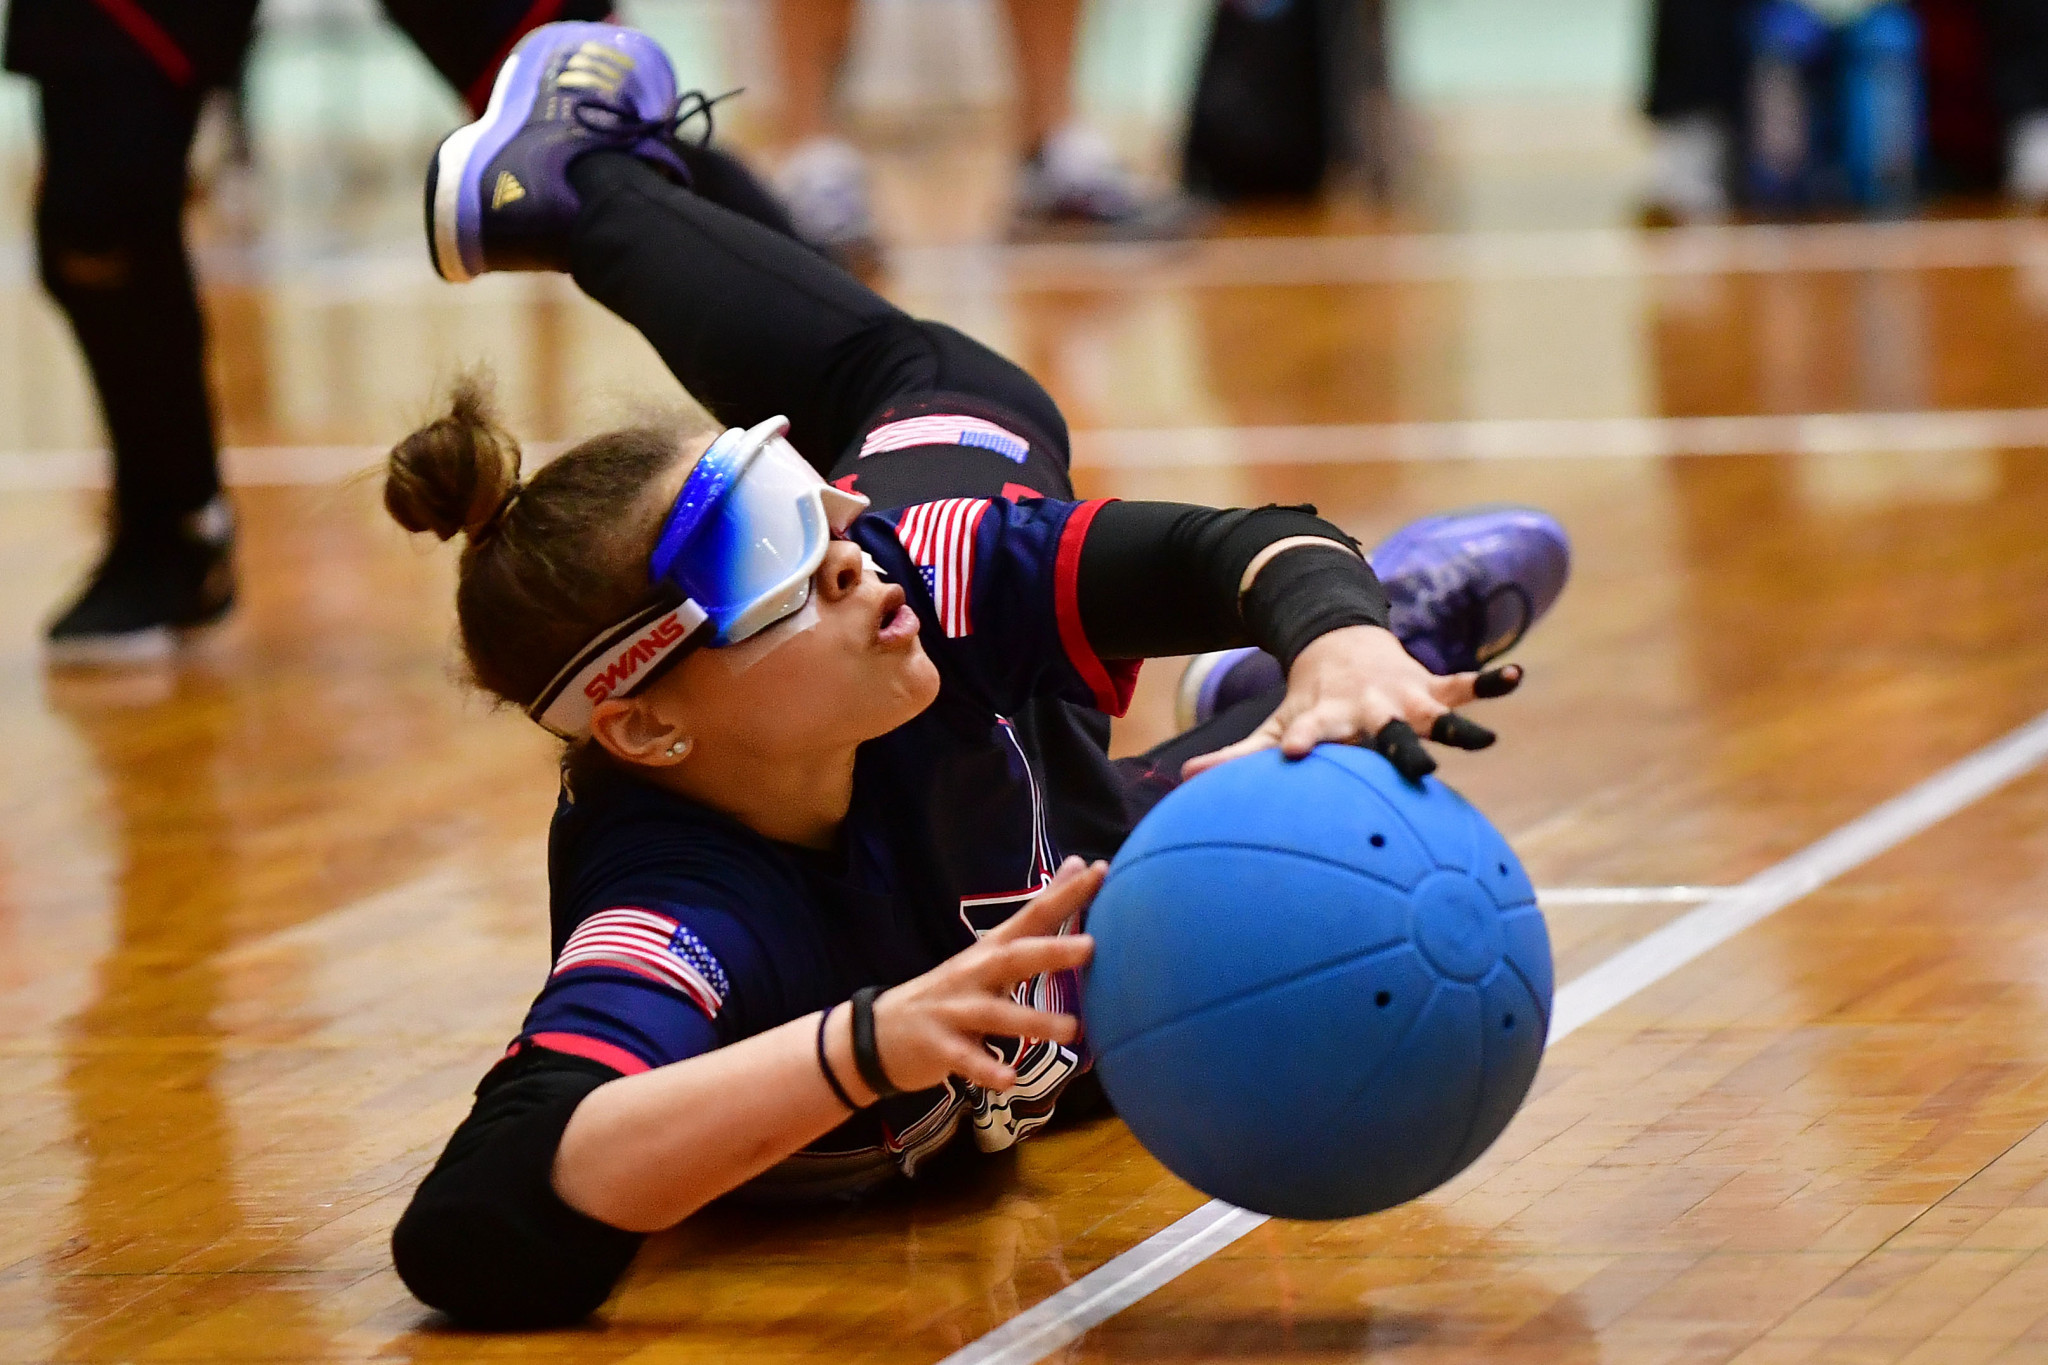 America's Amanda Dennis will be hoping for a turnaround in fortunes at the Goalball International Qualifier in Fort Wayne as the team try to qualify for Tokyo 2020 having won the Paralympic Games bronze medals at Rio 2016 ©Getty Images